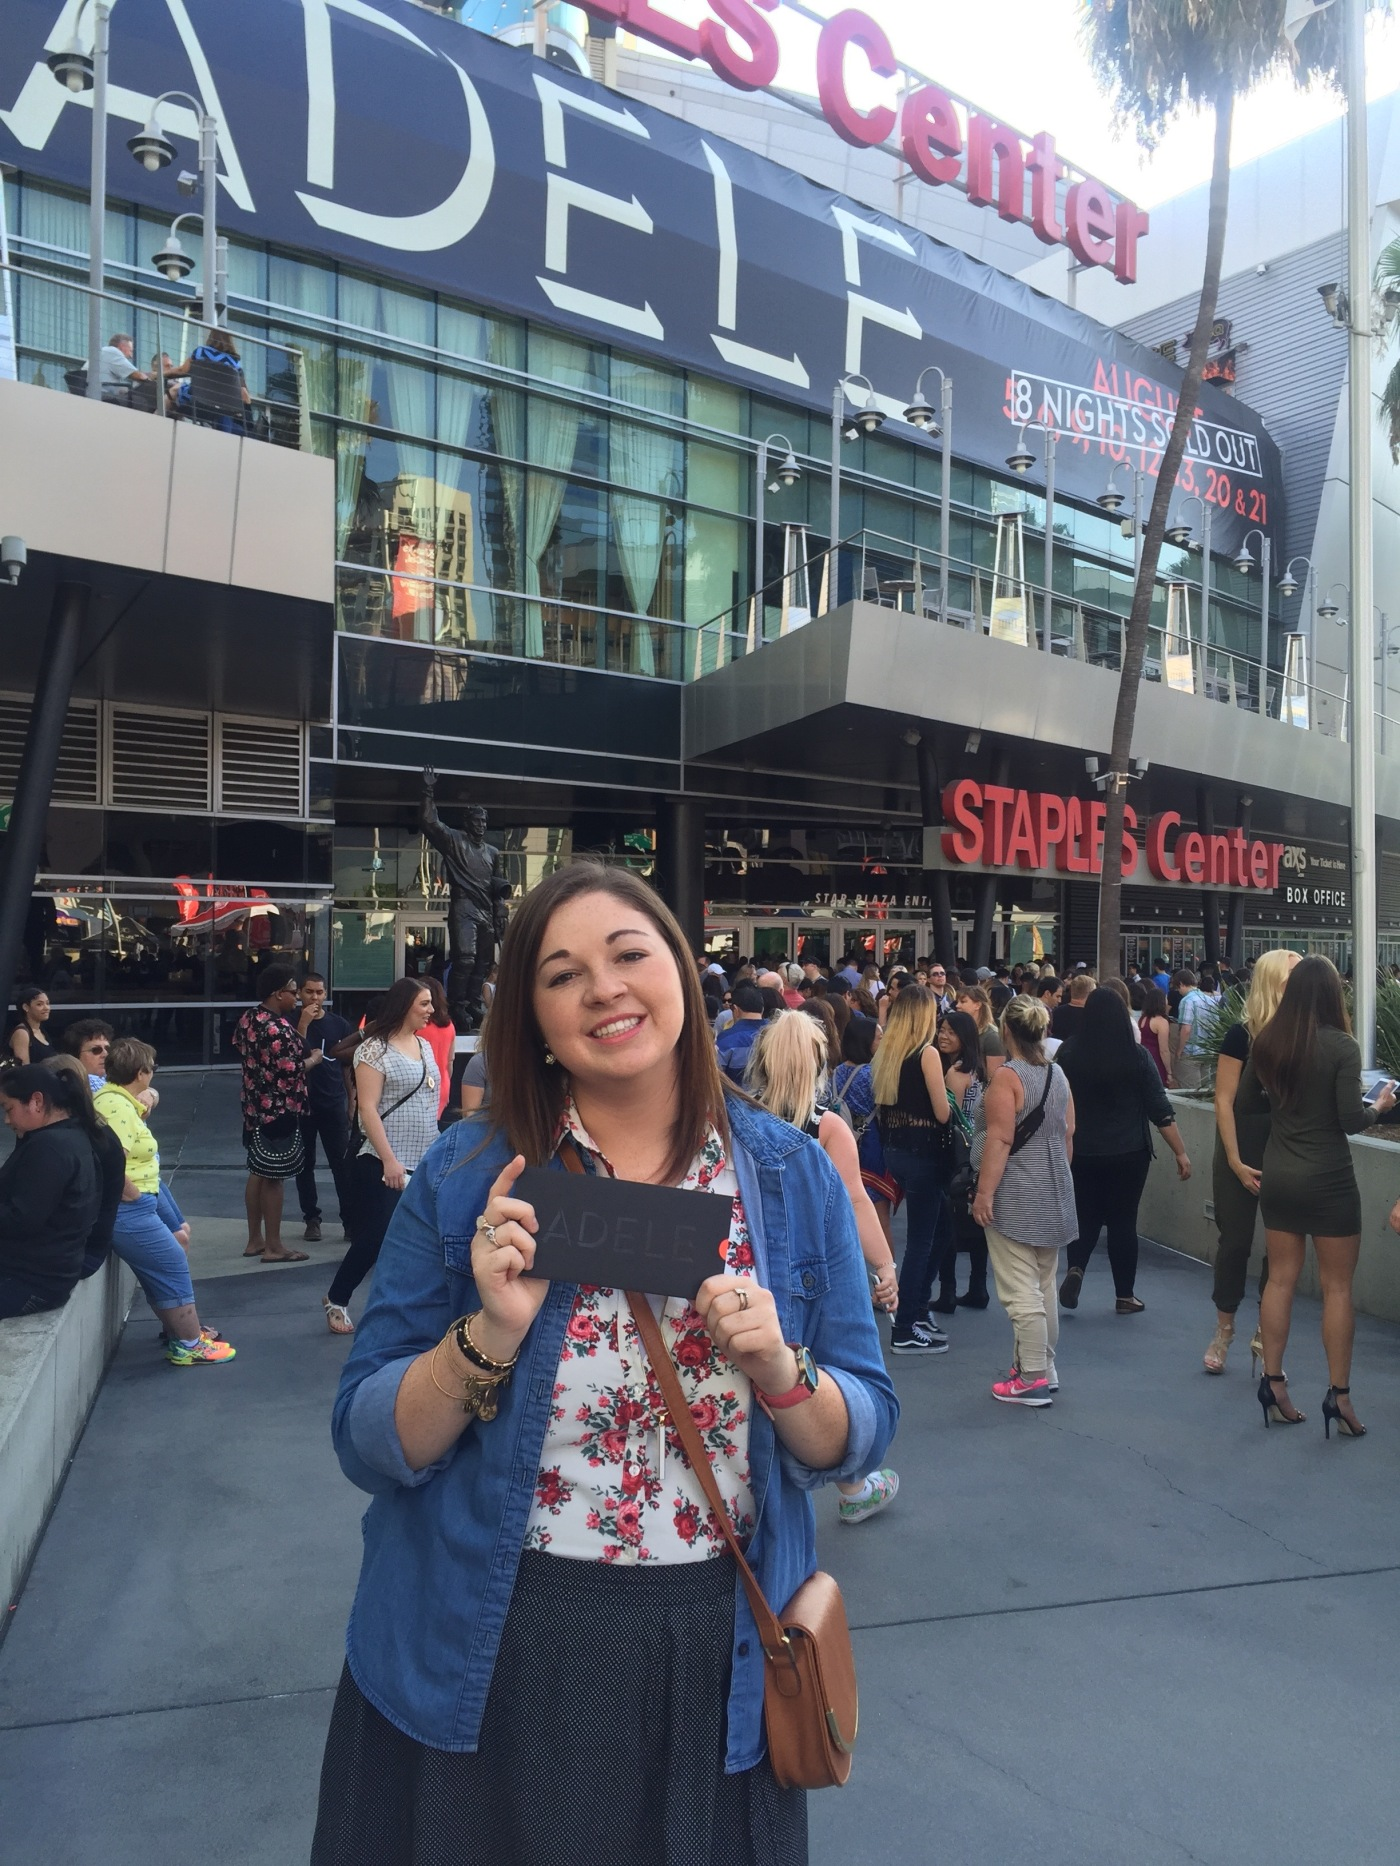 Adele Live--Staples Center--Los Angeles California